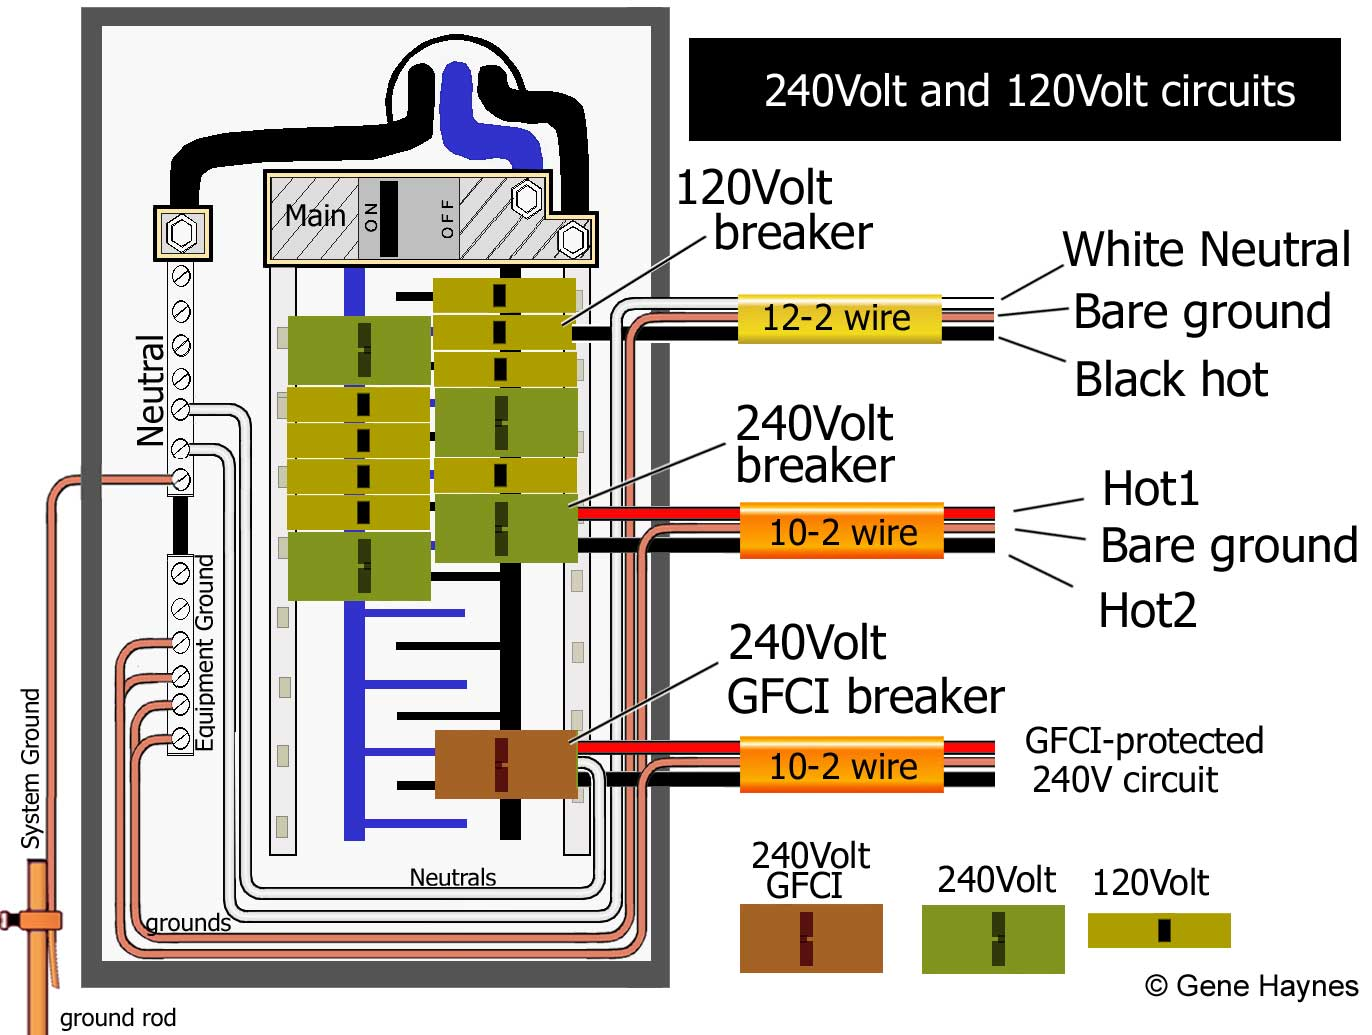 110 volt gfci breaker wiring diagram example electrical wiring rh huntervalleyhotels co 120 Volt GFCI Breaker Wiring Diagram Kitchen GFCI Wiring-Diagram